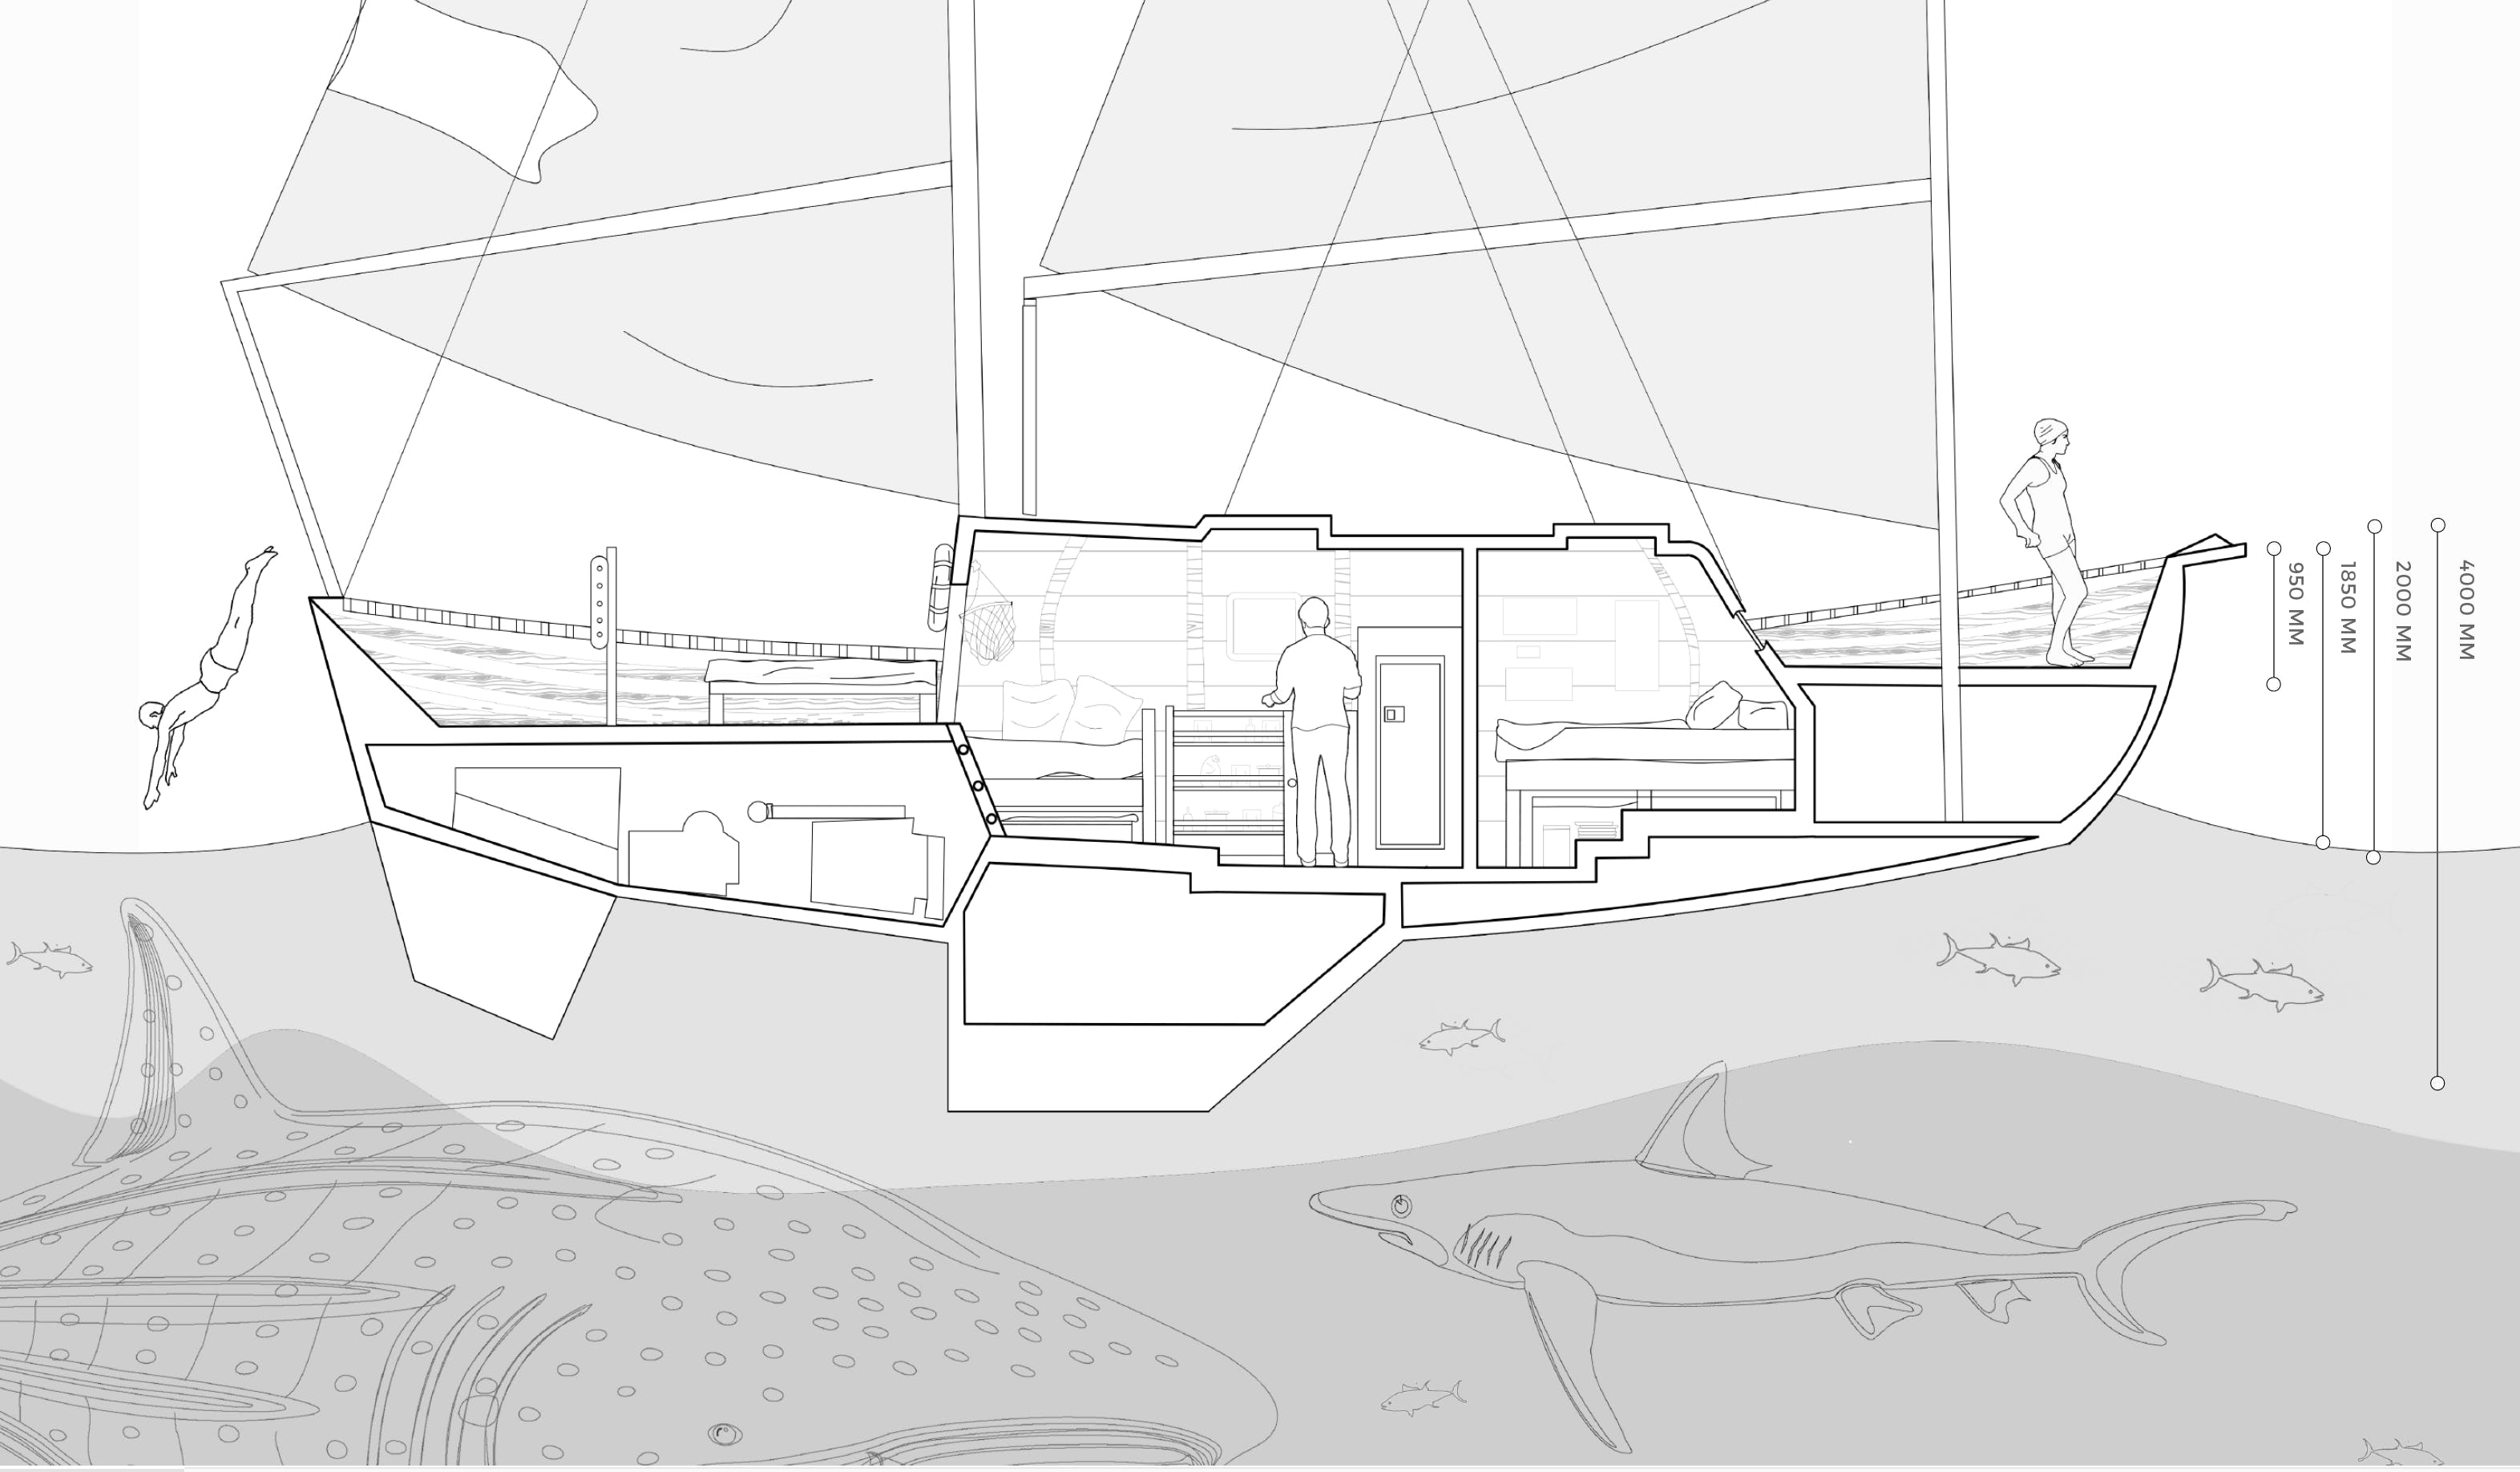 The process work revolved around studying small spaces like house boats. Highly recommend viewing the link above.